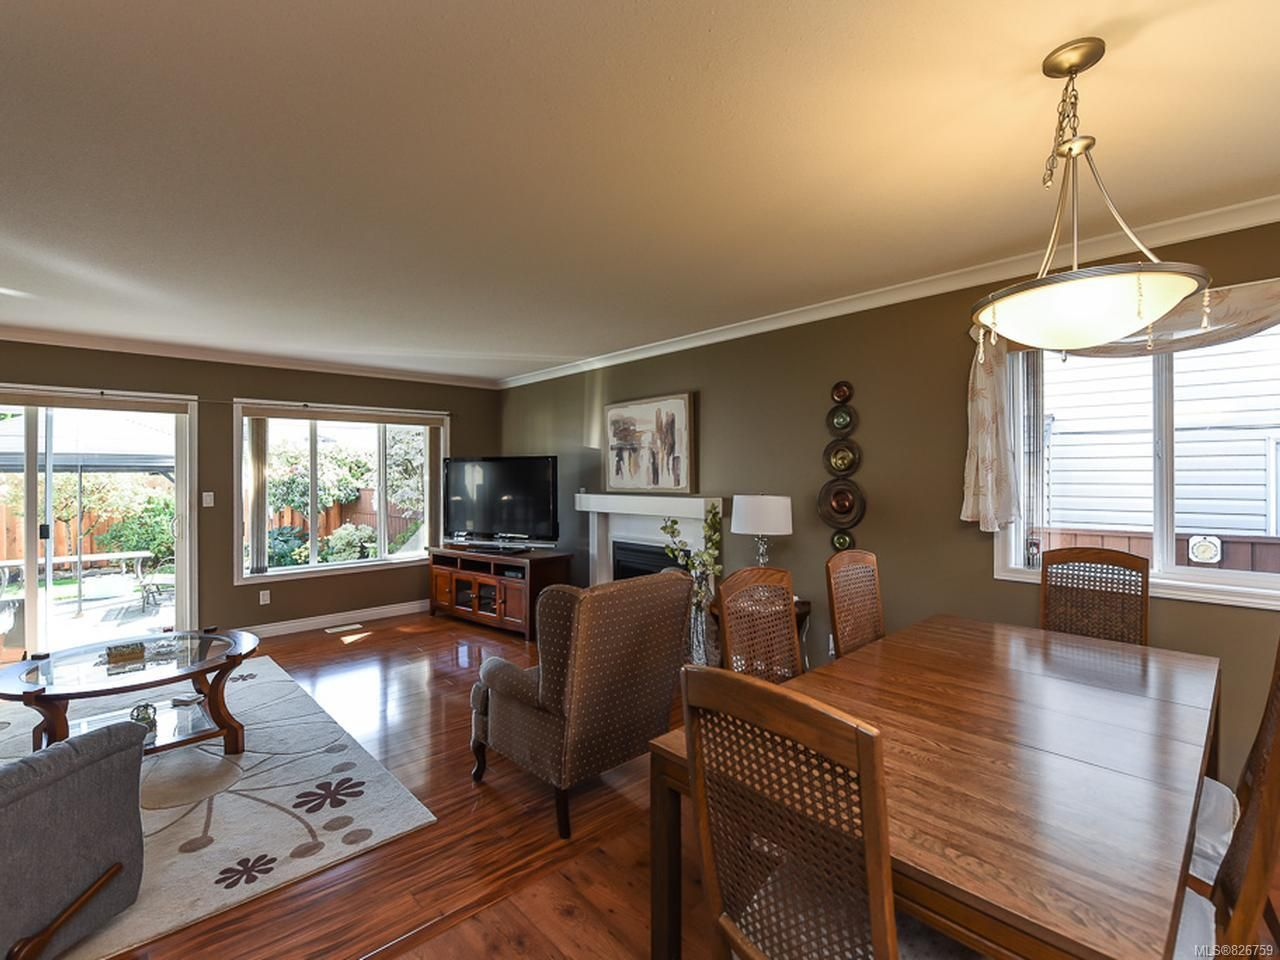 Photo 7: Photos: 2165 Stirling Cres in COURTENAY: CV Courtenay East House for sale (Comox Valley)  : MLS®# 826759